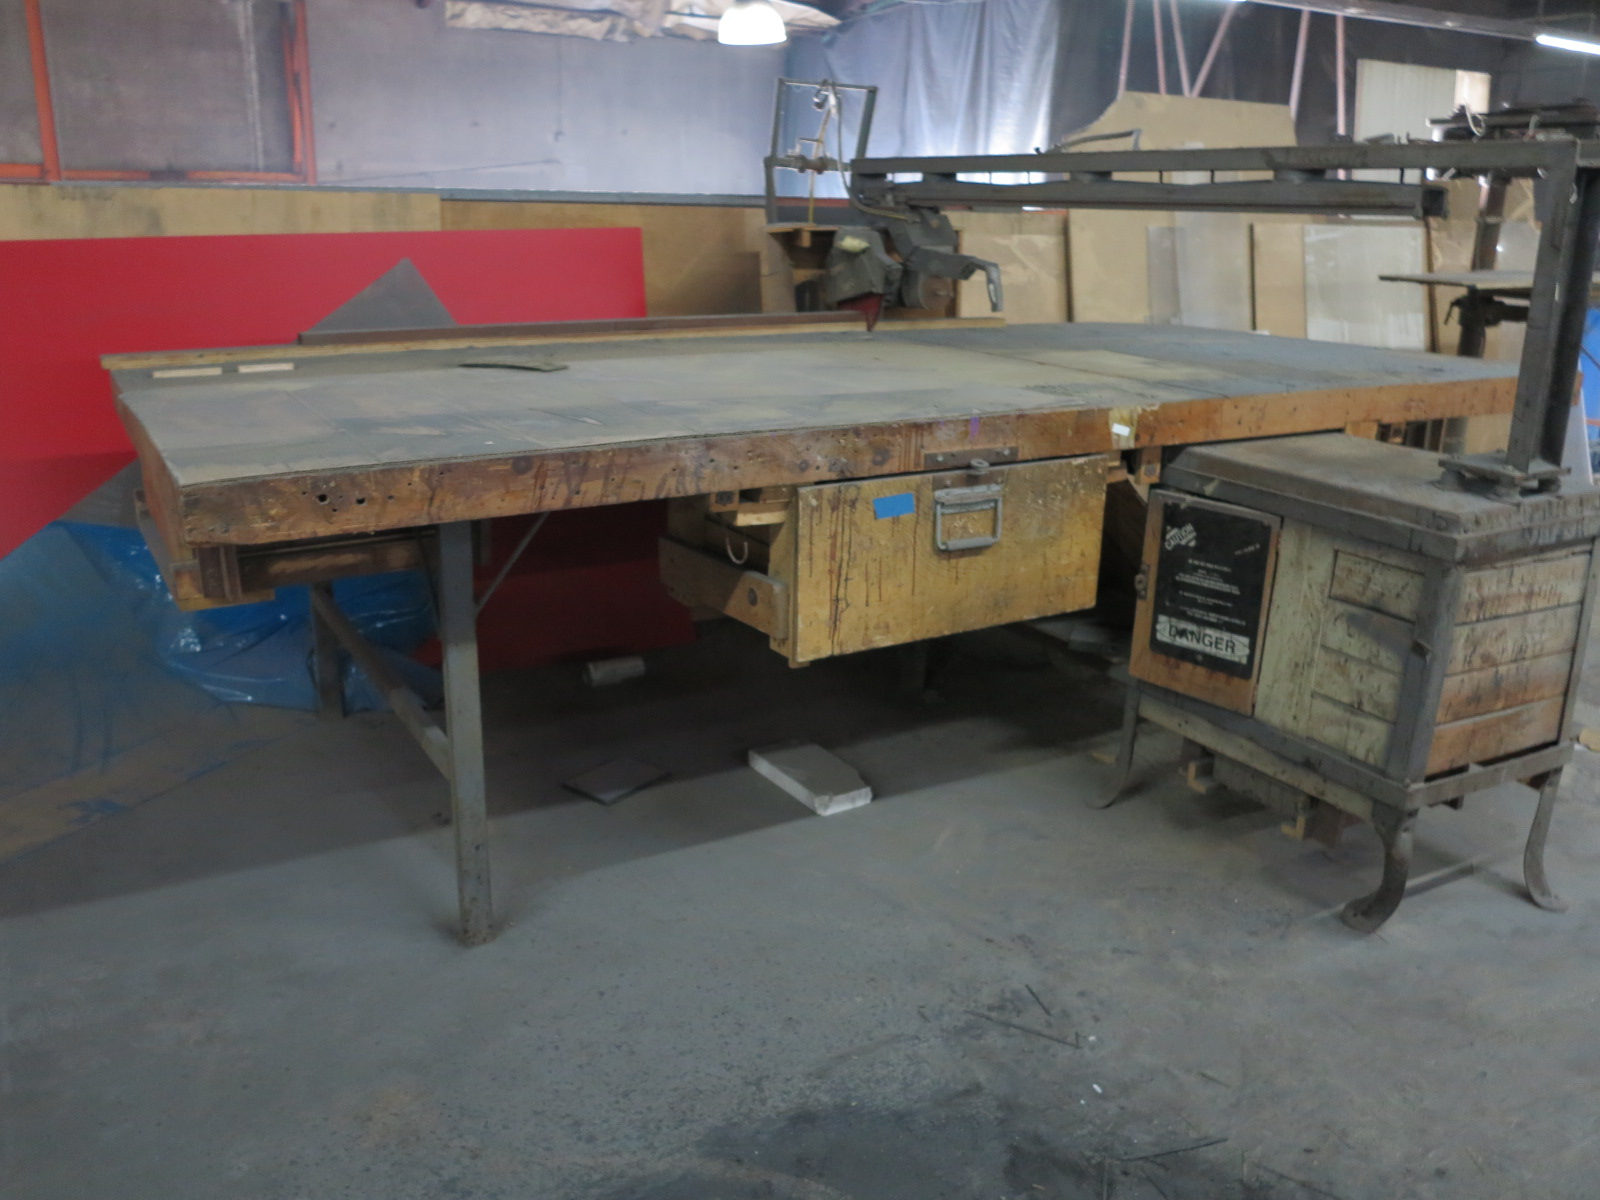 HORIZONTAL RADIAL ARM PANEL SAW, OUT OF SERVICE - Image 3 of 3